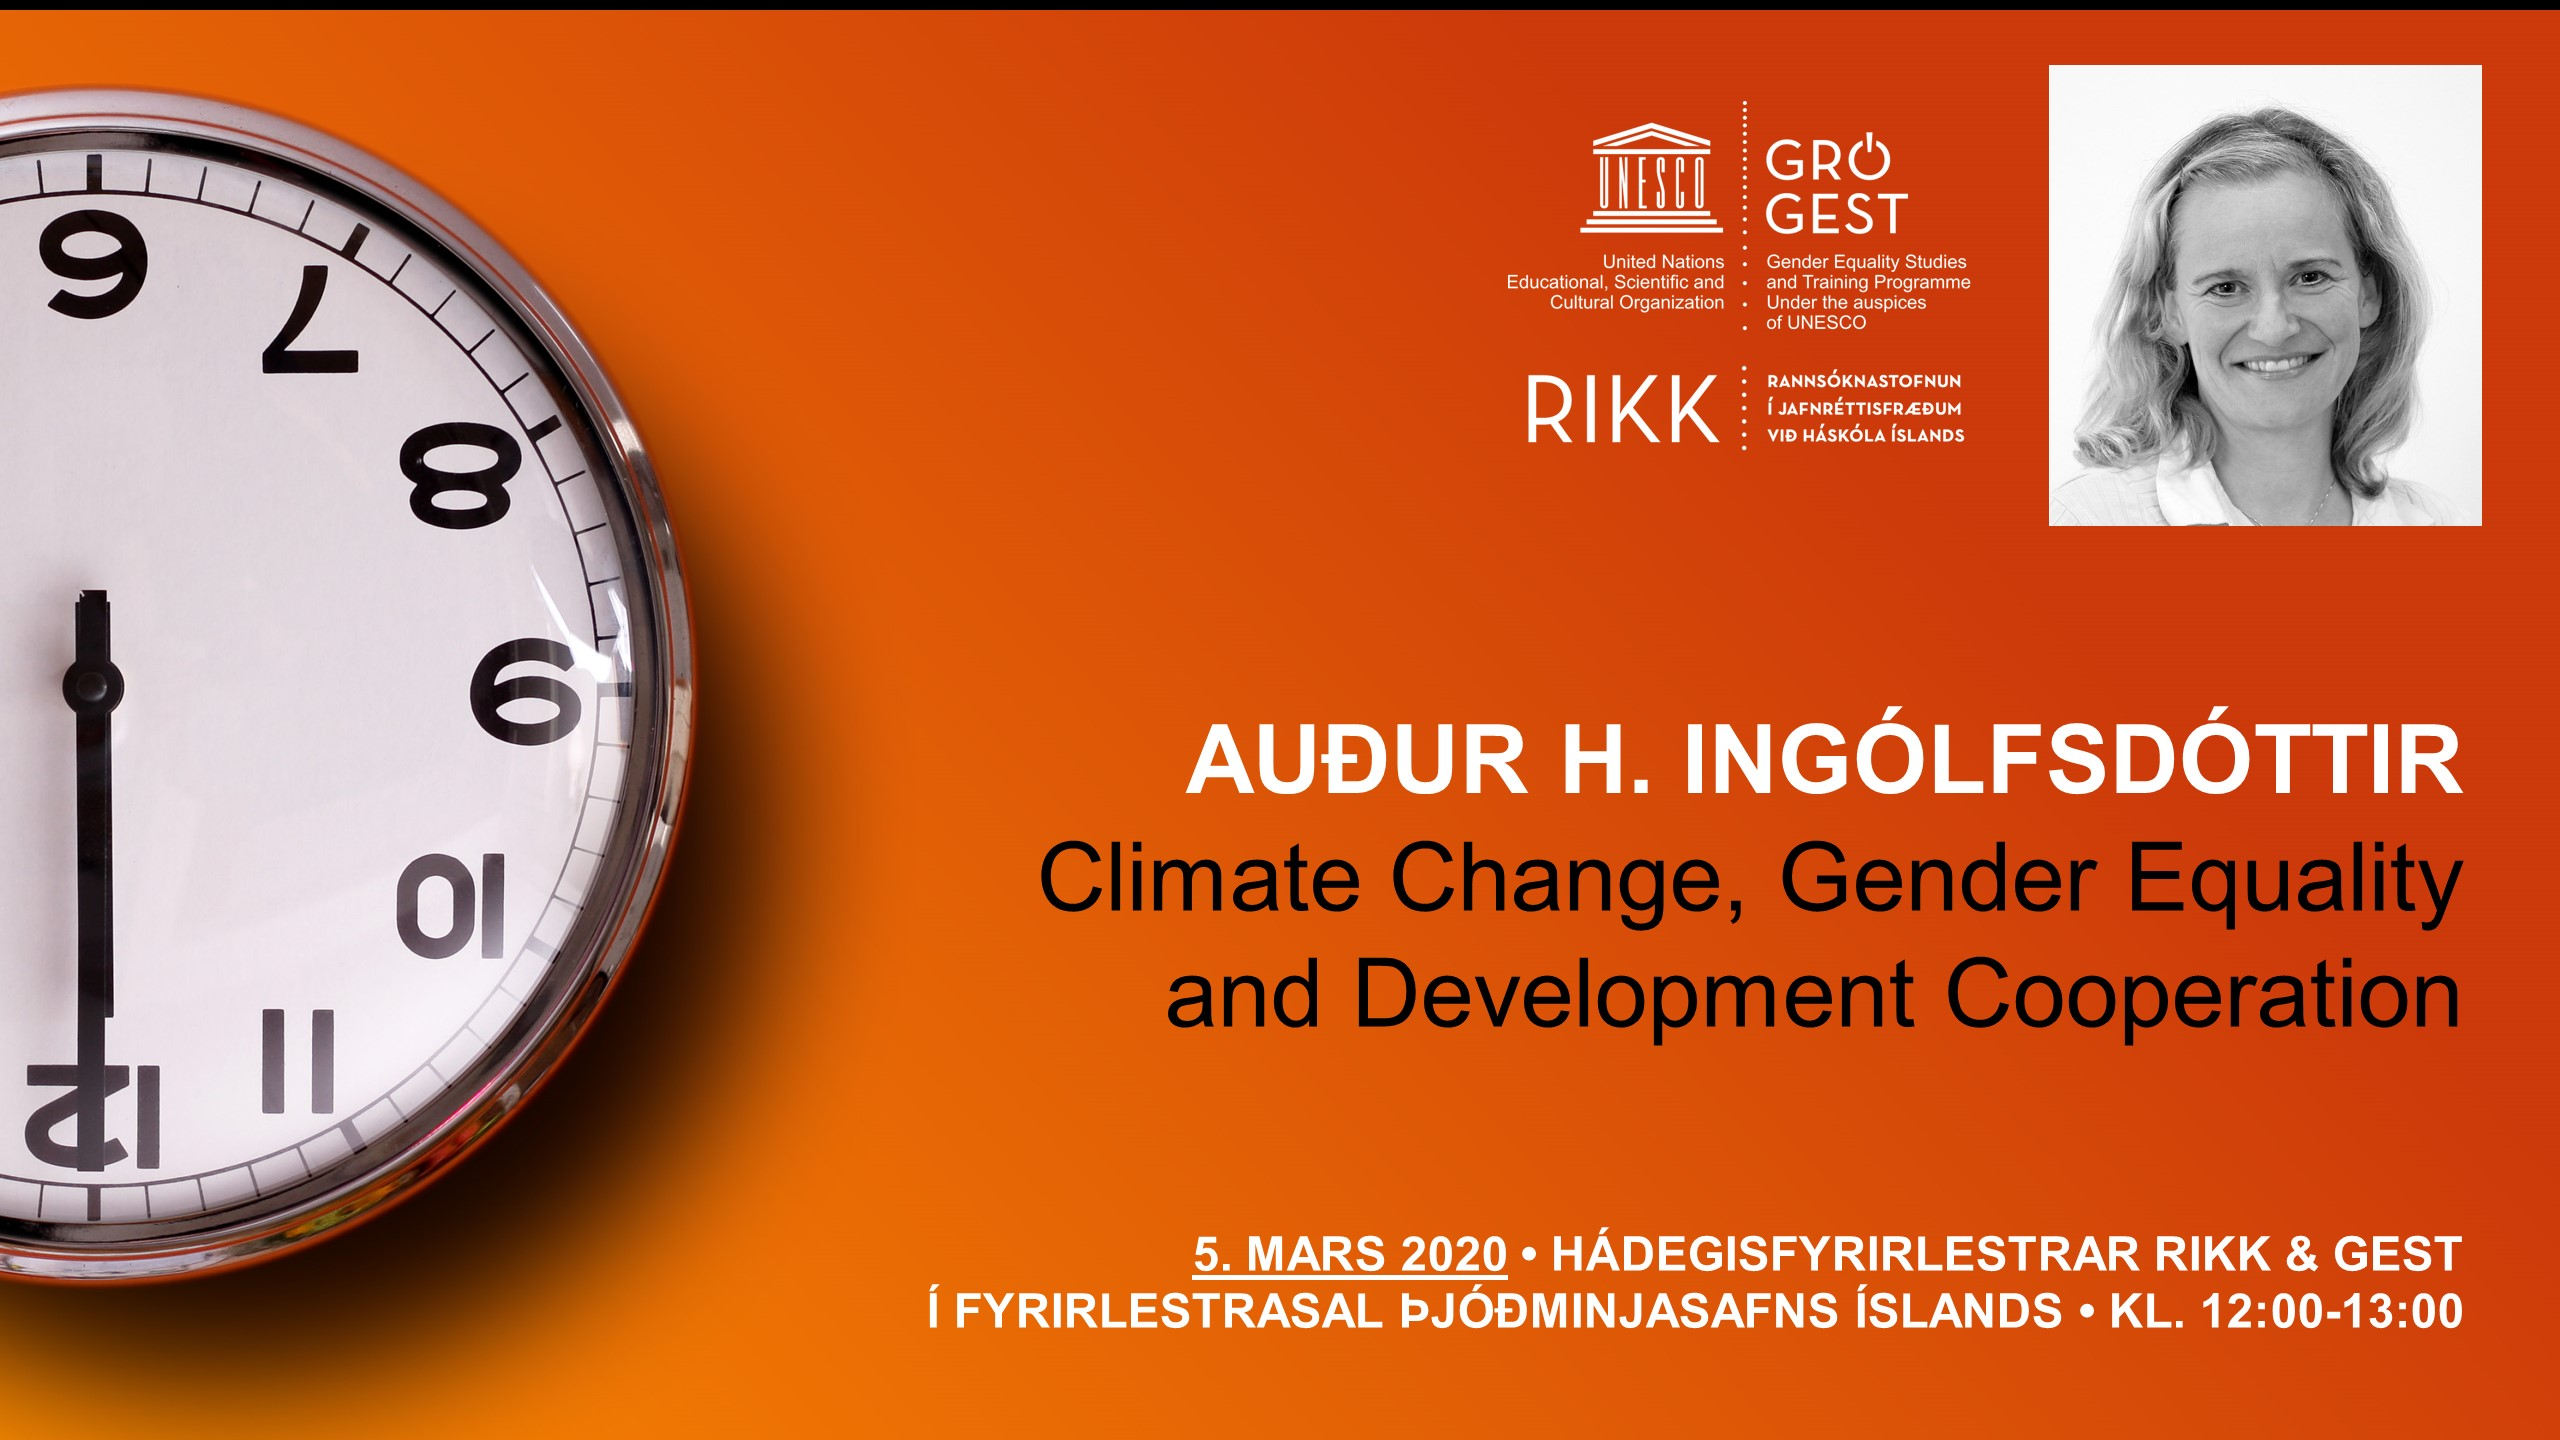 Climate Change, Gender Equality and Development Cooperation